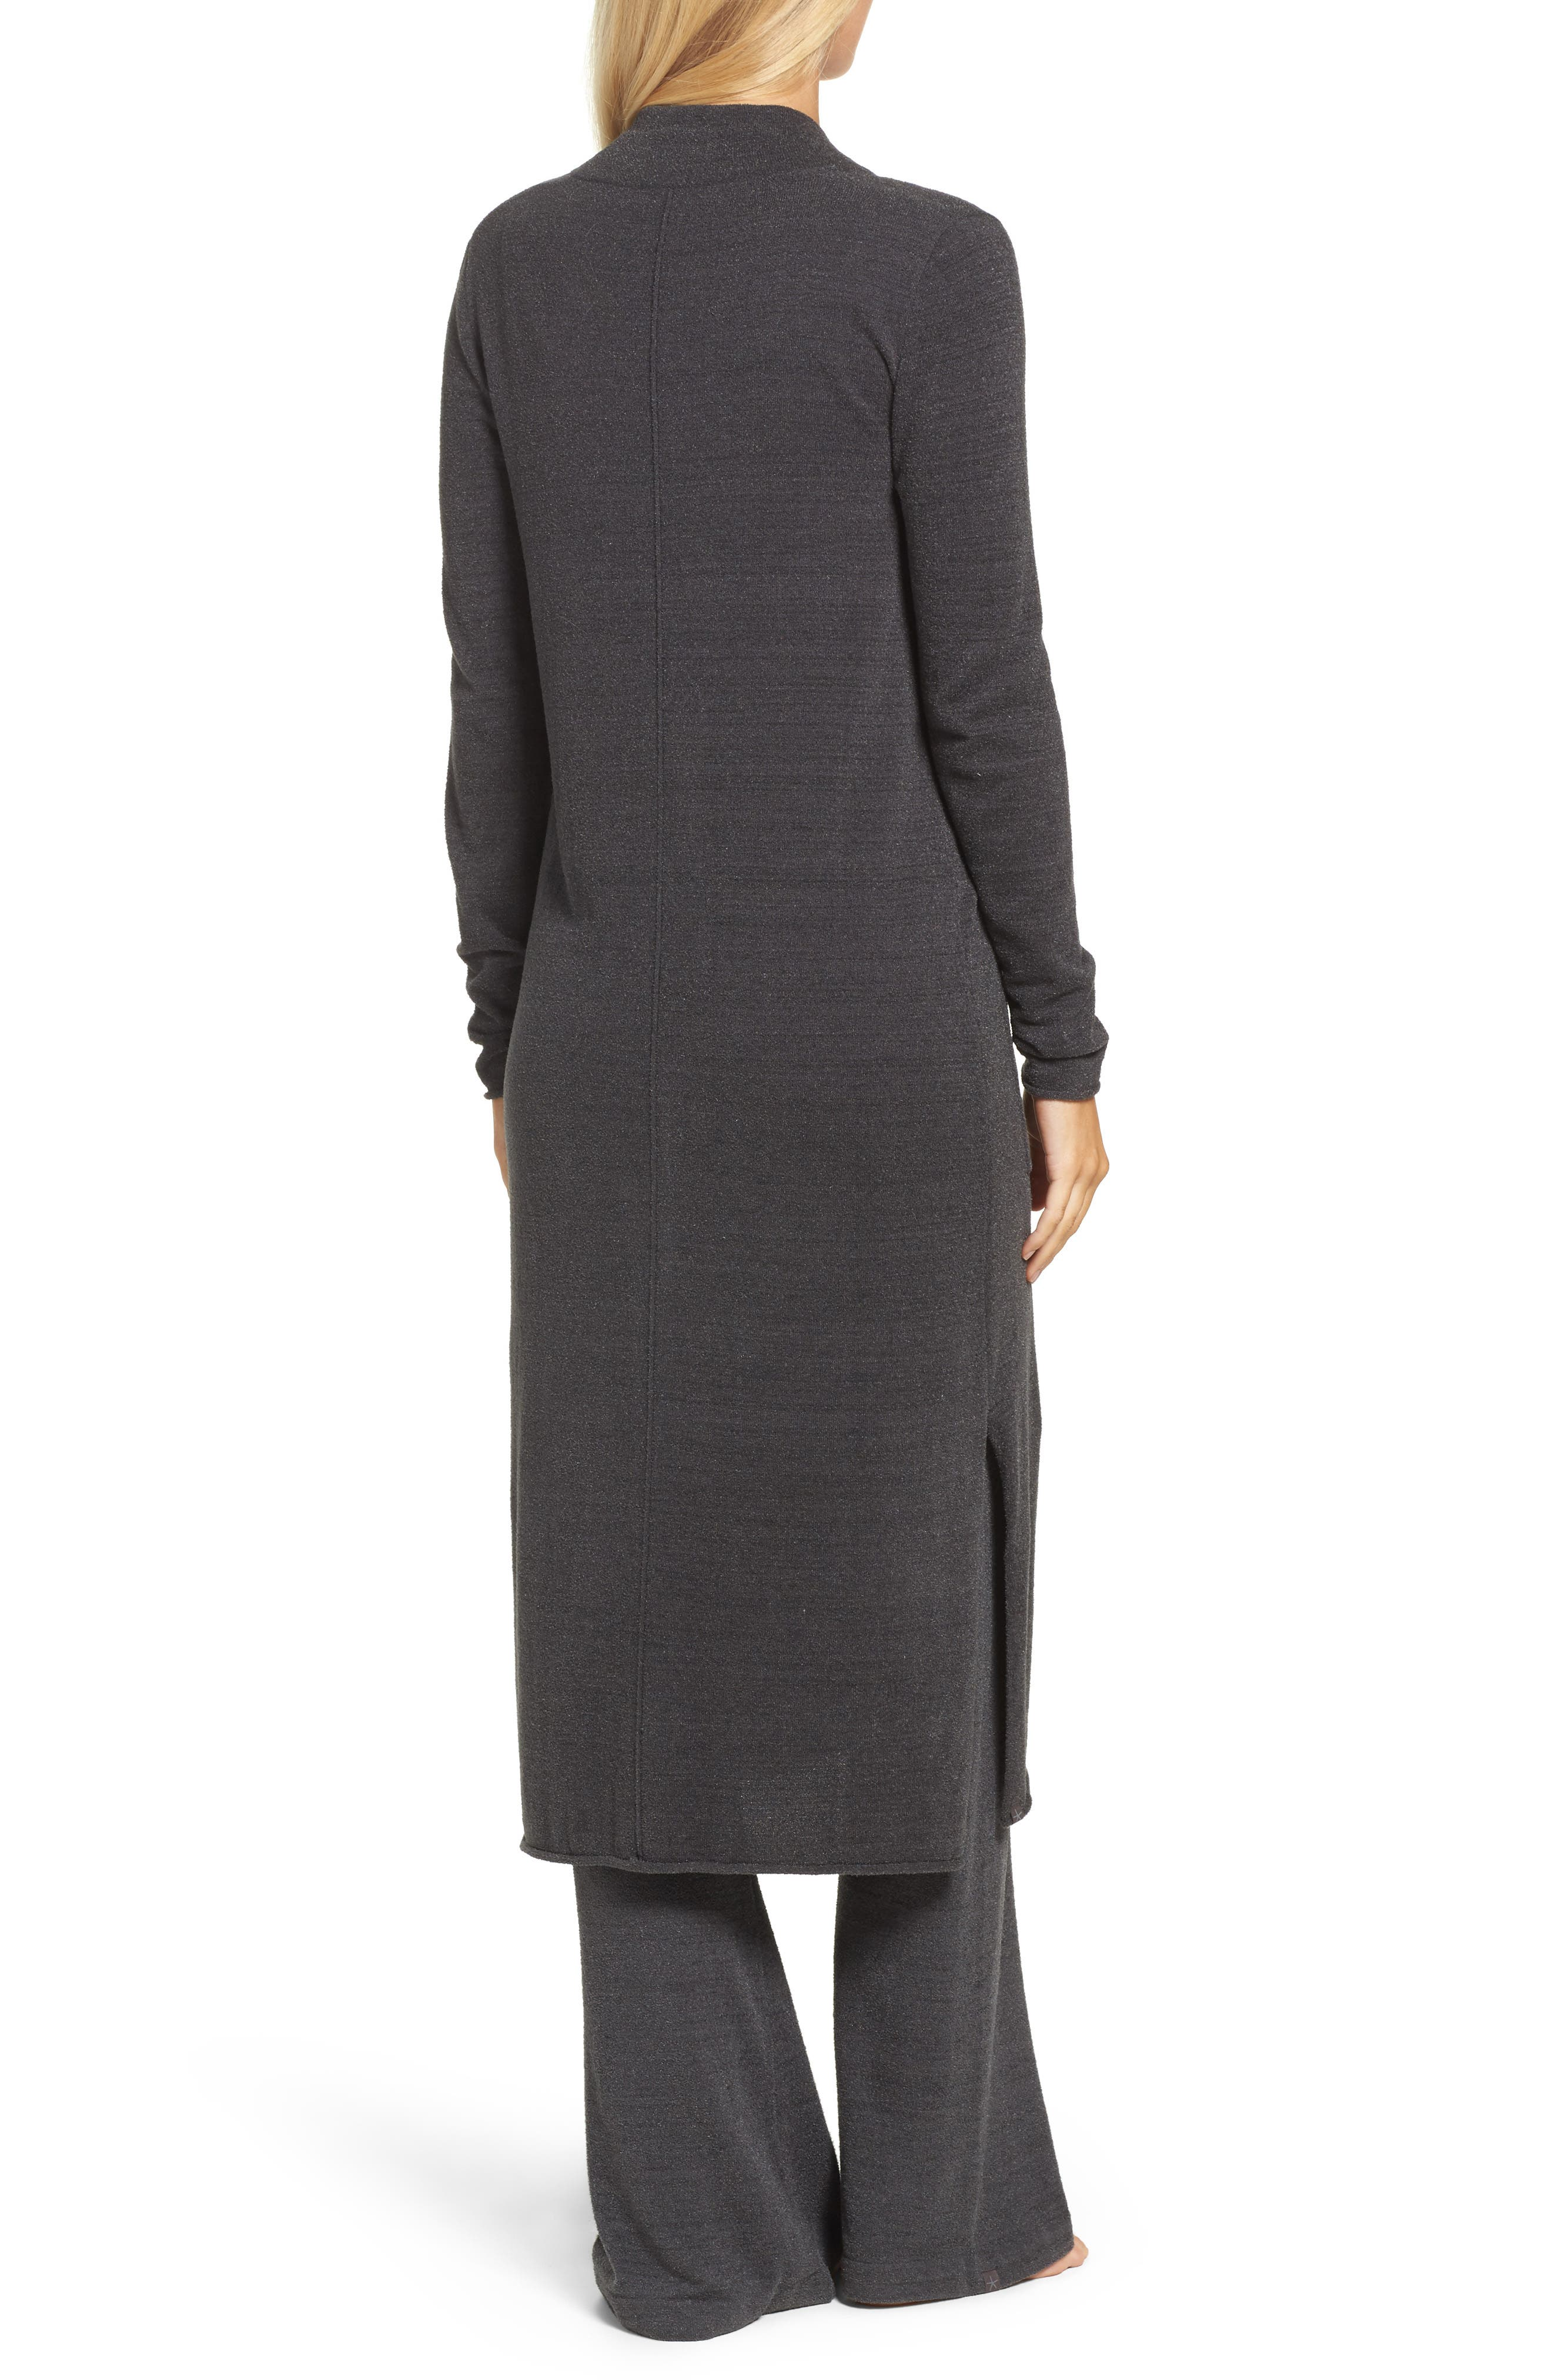 Barefoot Dreams Cozychic Ultra Lite<sup>®</sup> Duster,                             Alternate thumbnail 2, color,                             Carbon